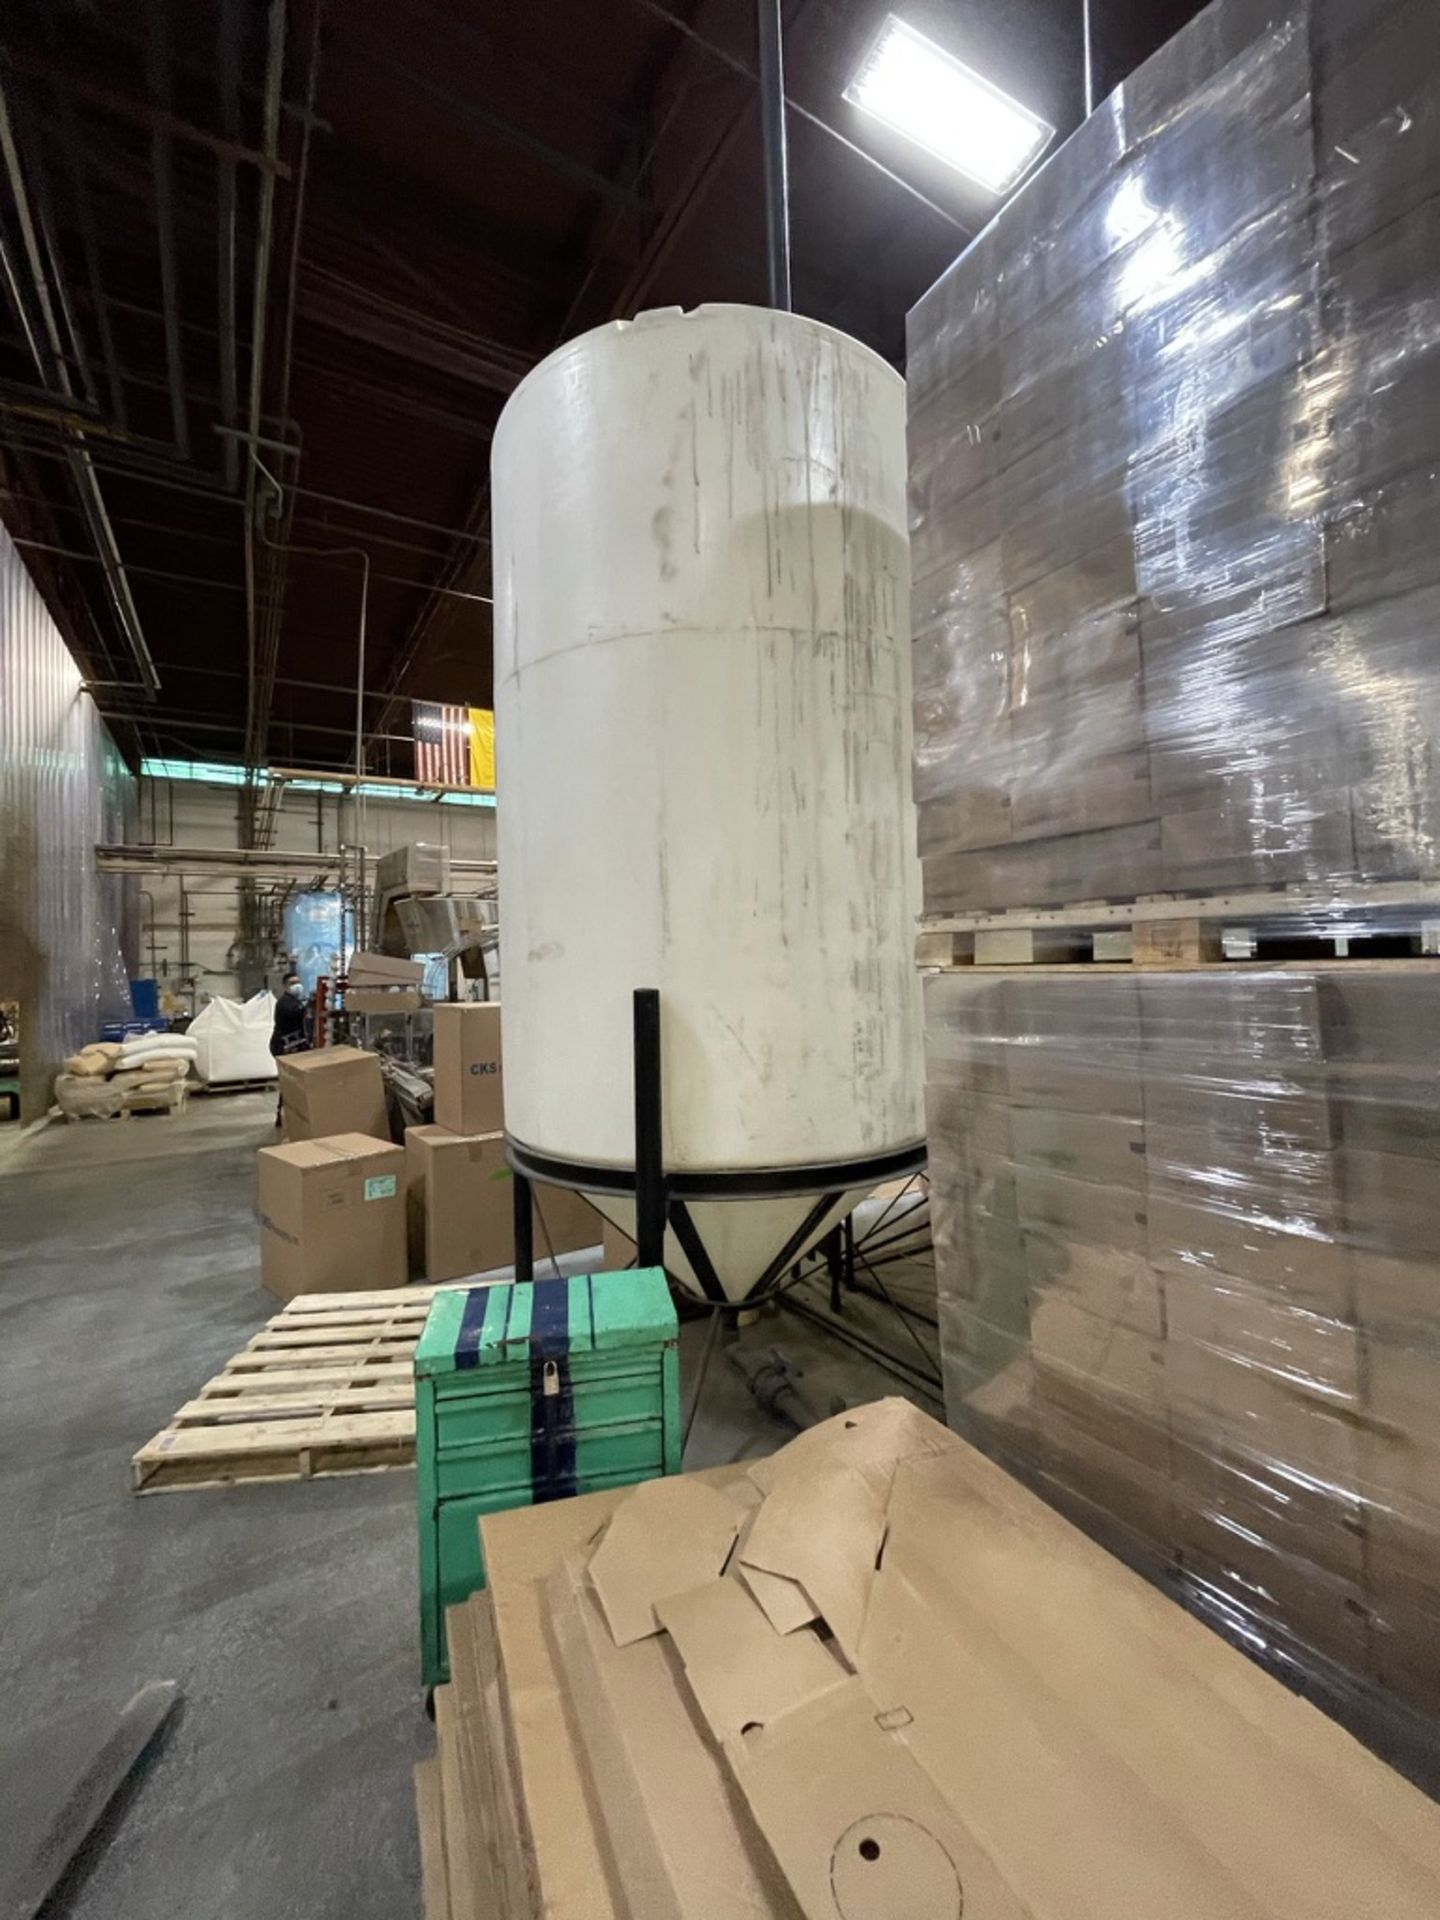 ACE ROTO MOLD APPROX. 1,400 GALLON CONE-BOTTOM POLY STORAGE TANK, STEEL FRAME - Image 4 of 6